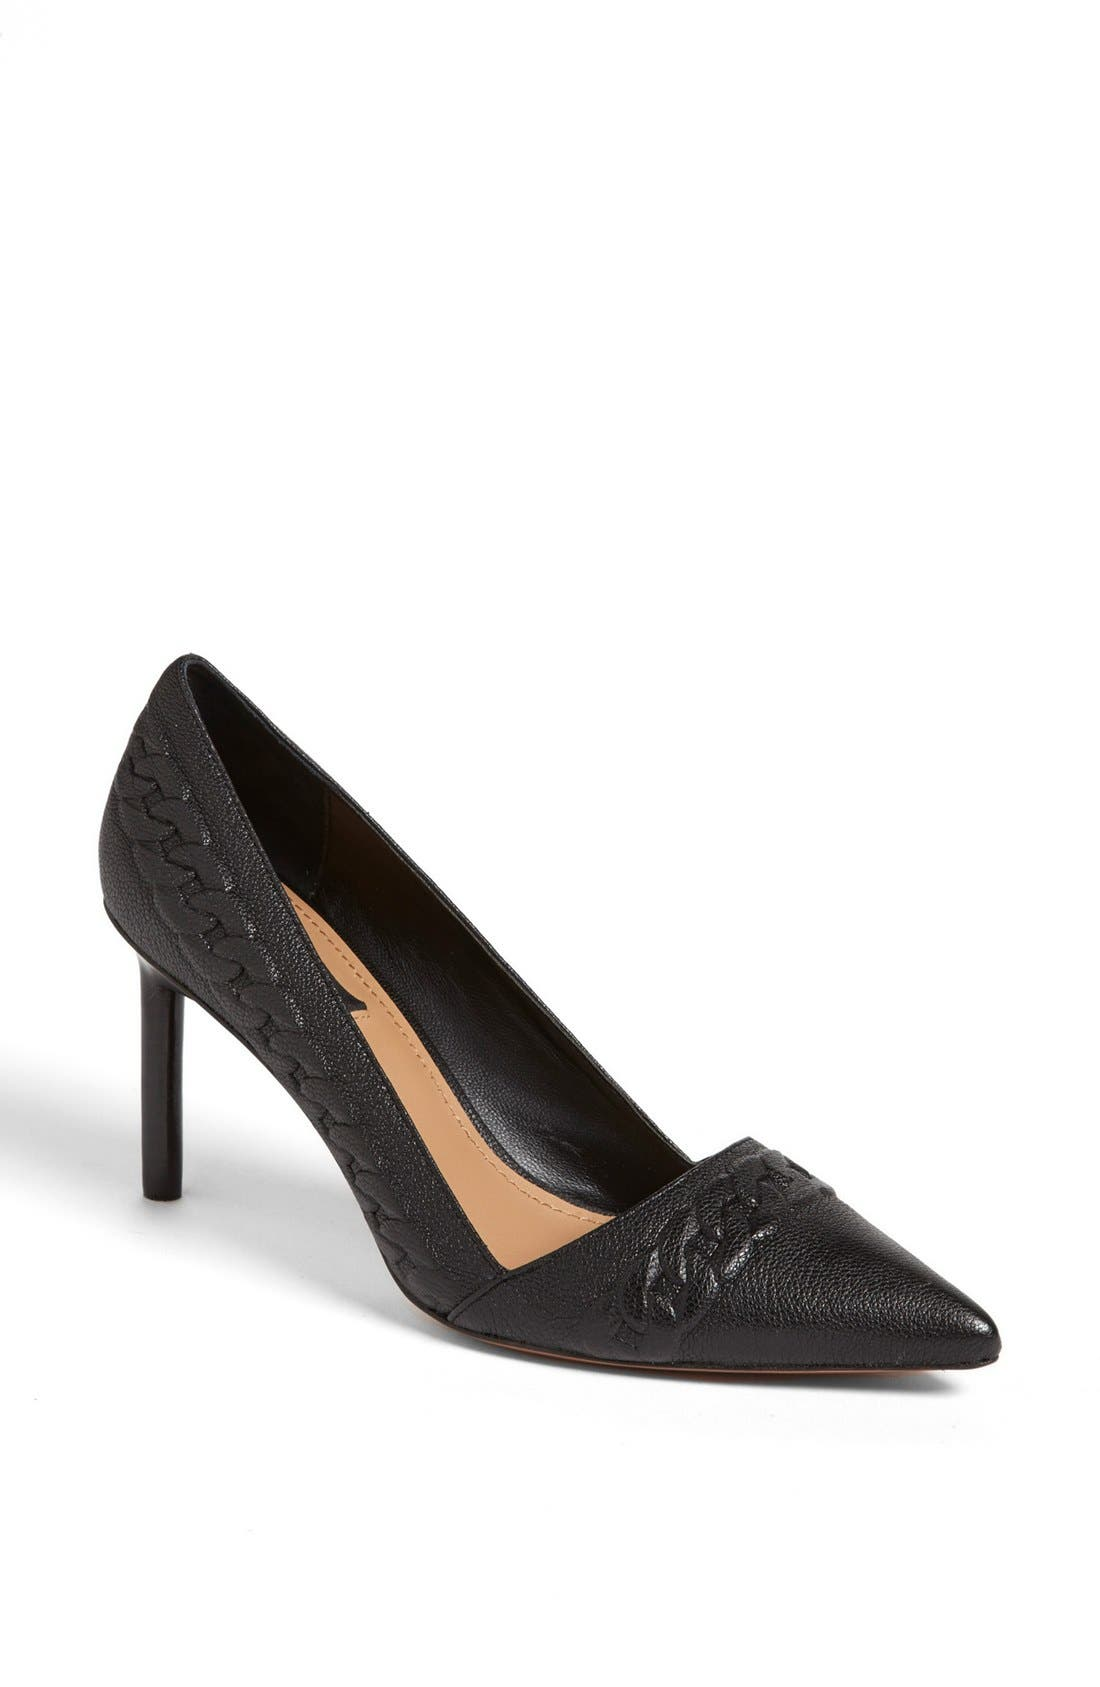 Alternate Image 1 Selected - Rachel Zoe 'Kenley' Leather Pump